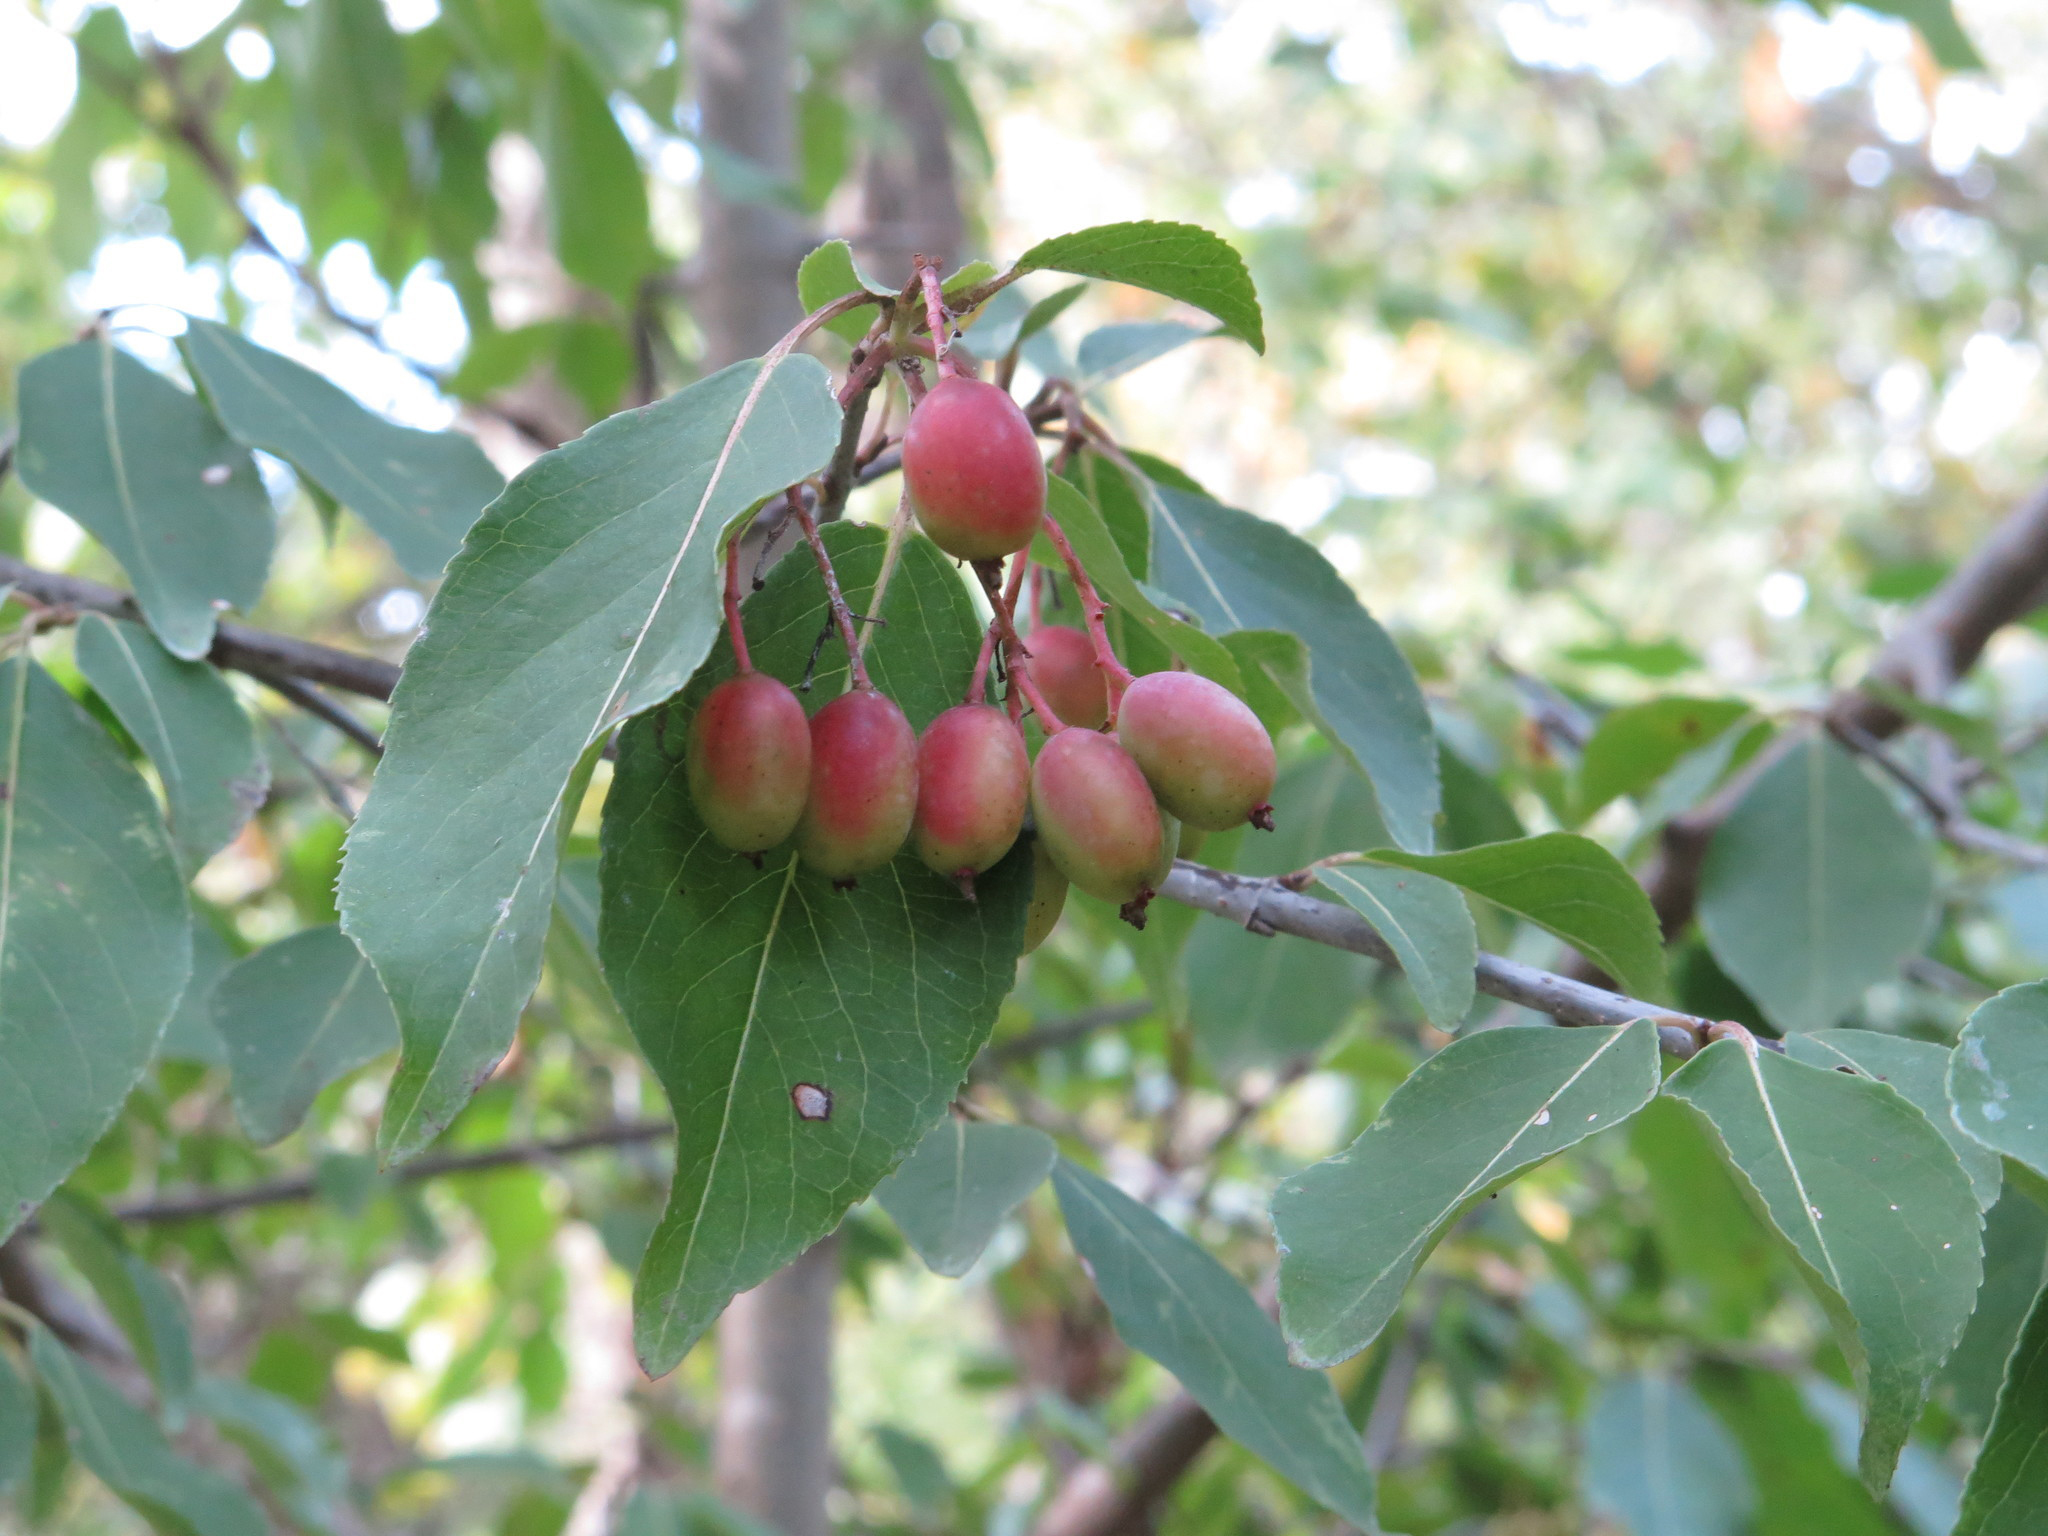 Blackhaw fruit